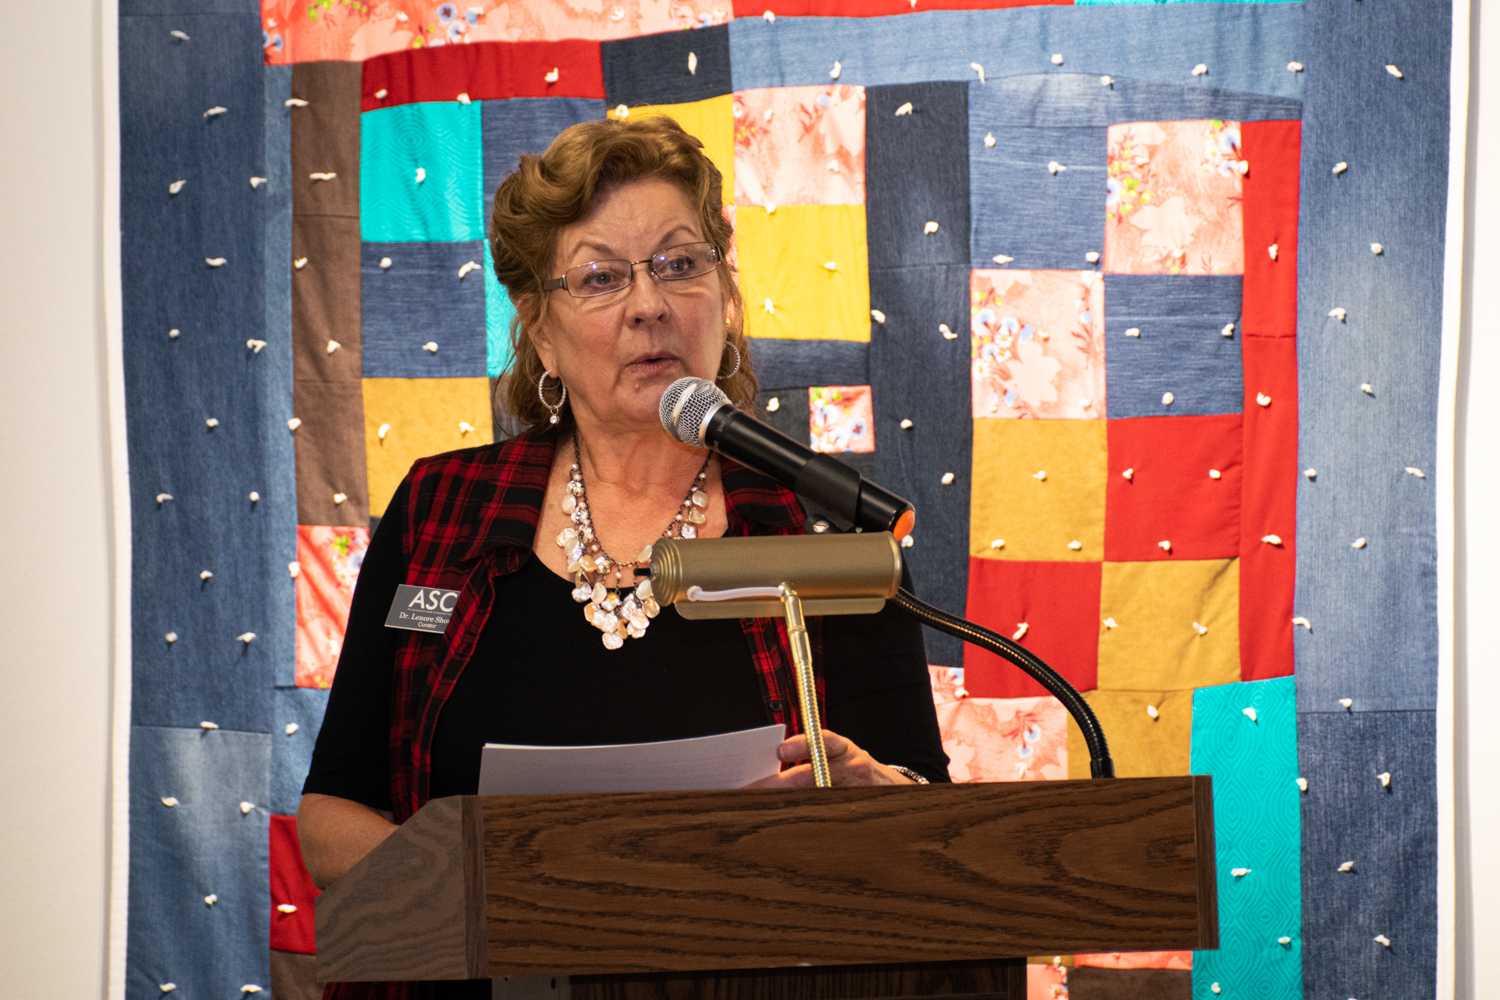 Eviction Quilts reception 2019June27 72dpi-0524.jpg